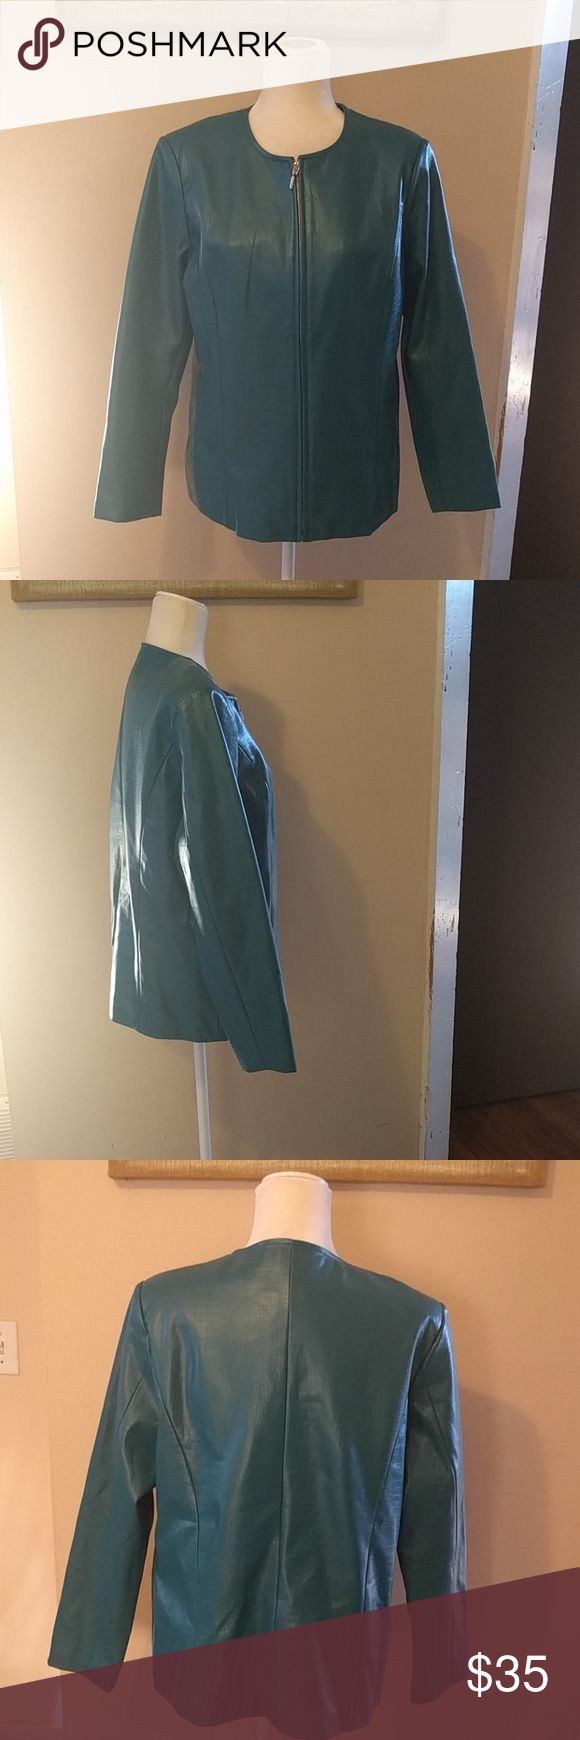 Teal textured Susan Graver  faux leather Jacket Great jacket, can work as a Blazer or light coat for fall. Great condition. Zipper front, two pockets. 40 inch bust. QVC Susan Graver Jackets & Coats